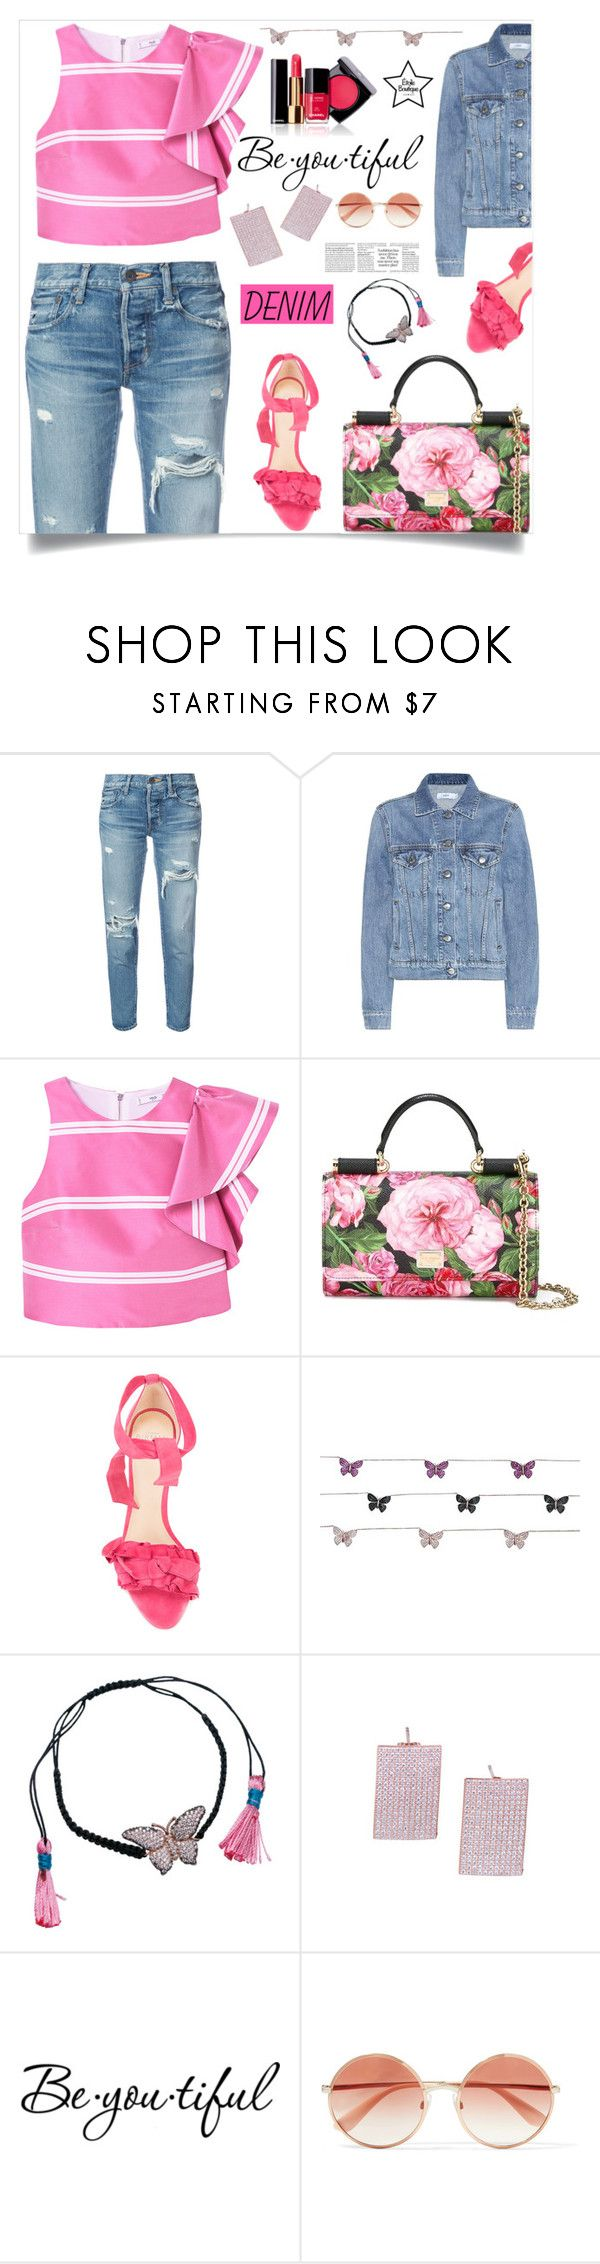 """Tear it Up: Distressed Denim"" by samra-bv ❤ liked on Polyvore featuring moussy, Closed, MANGO, Dolce&Gabbana, Alexandre Birman, Chanel and Schone"